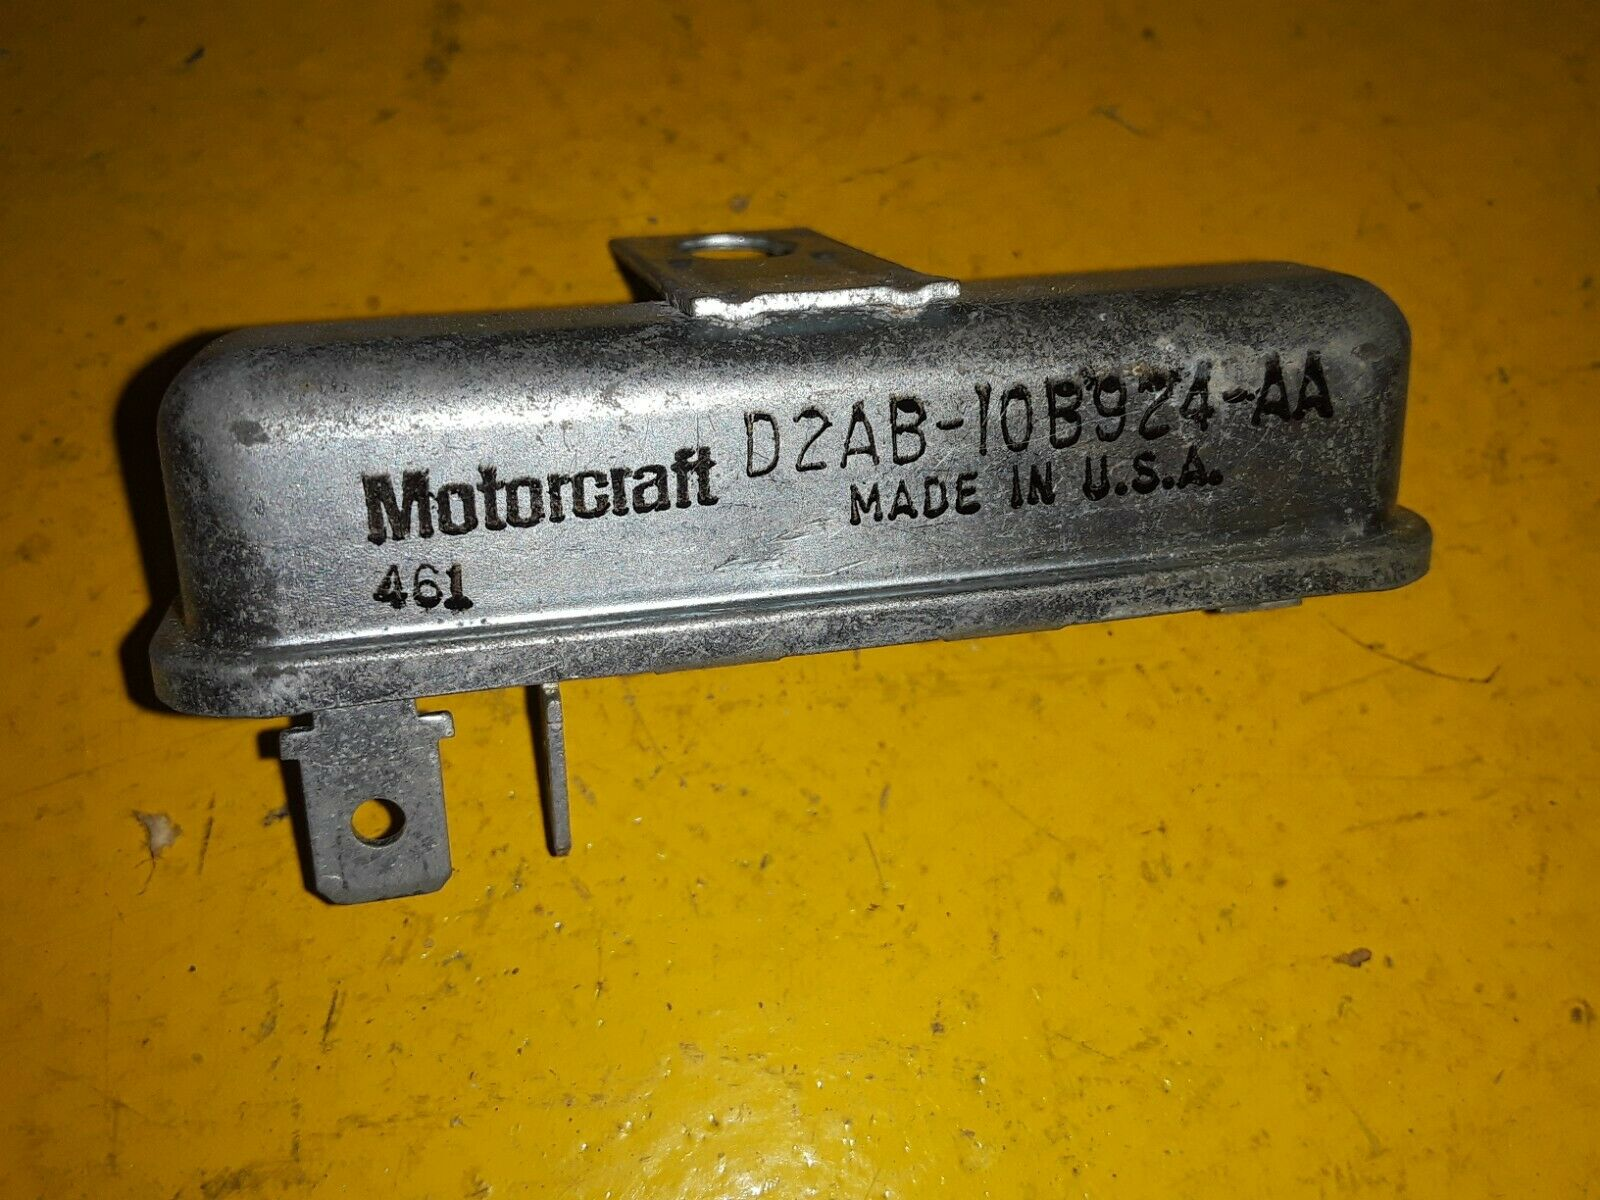 NOS FORD SEAT BELT WARNING RELAY SW-1094 / D2AB-10B924-AA / D1AZ-10B924-A Does not apply